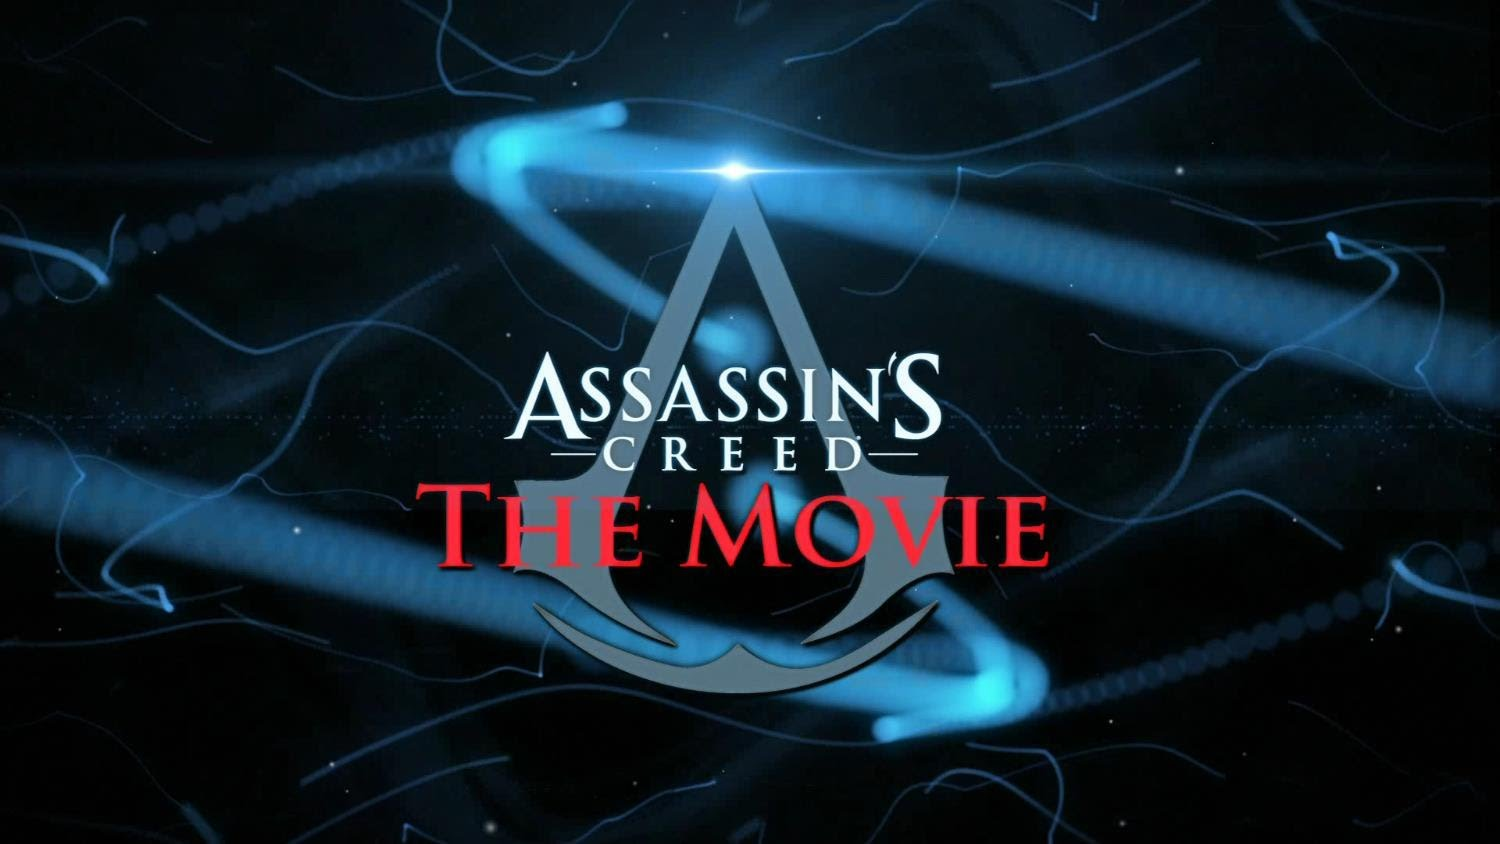 Póster de Assassin's Creed, the movie